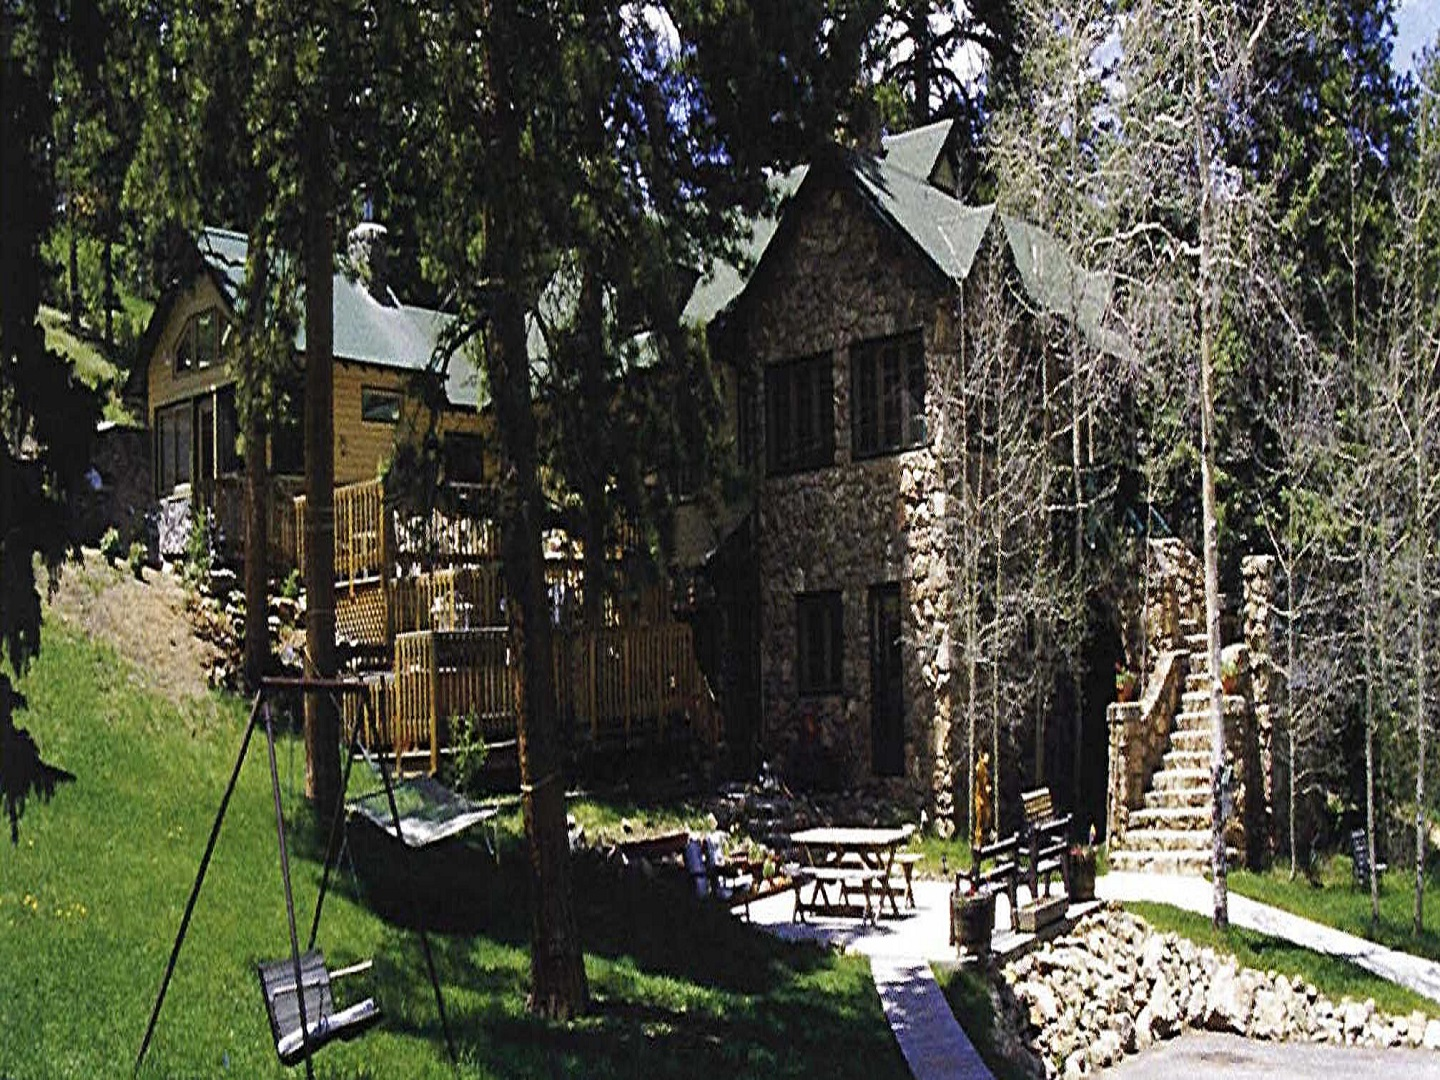 A house with trees in the background at Meadow Creek Mountain Lodge and Event center.